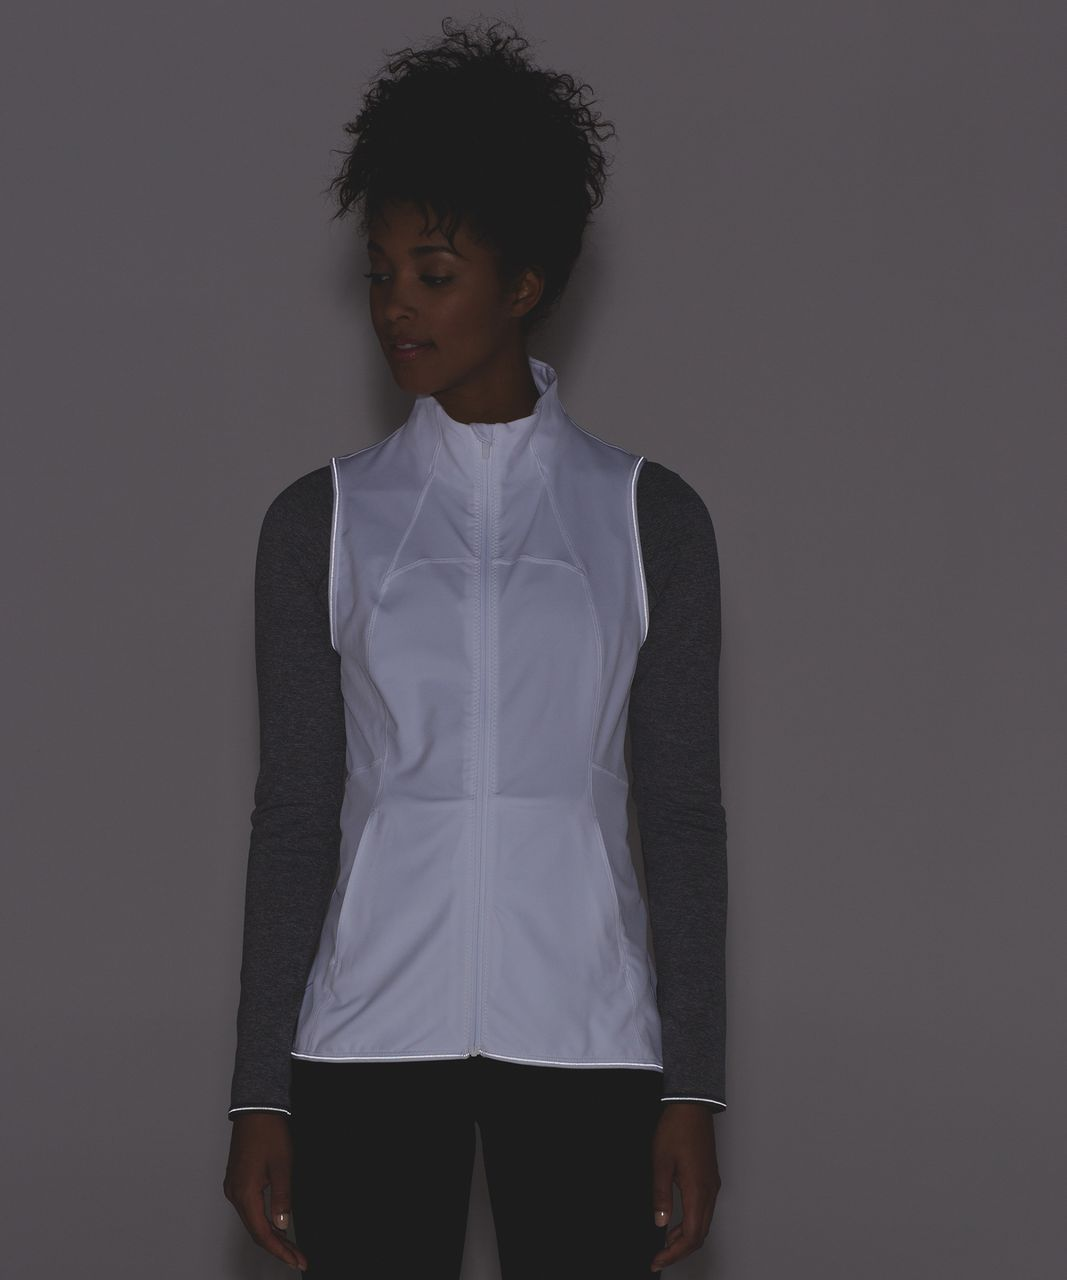 Lululemon Hill And Valley Vest - White